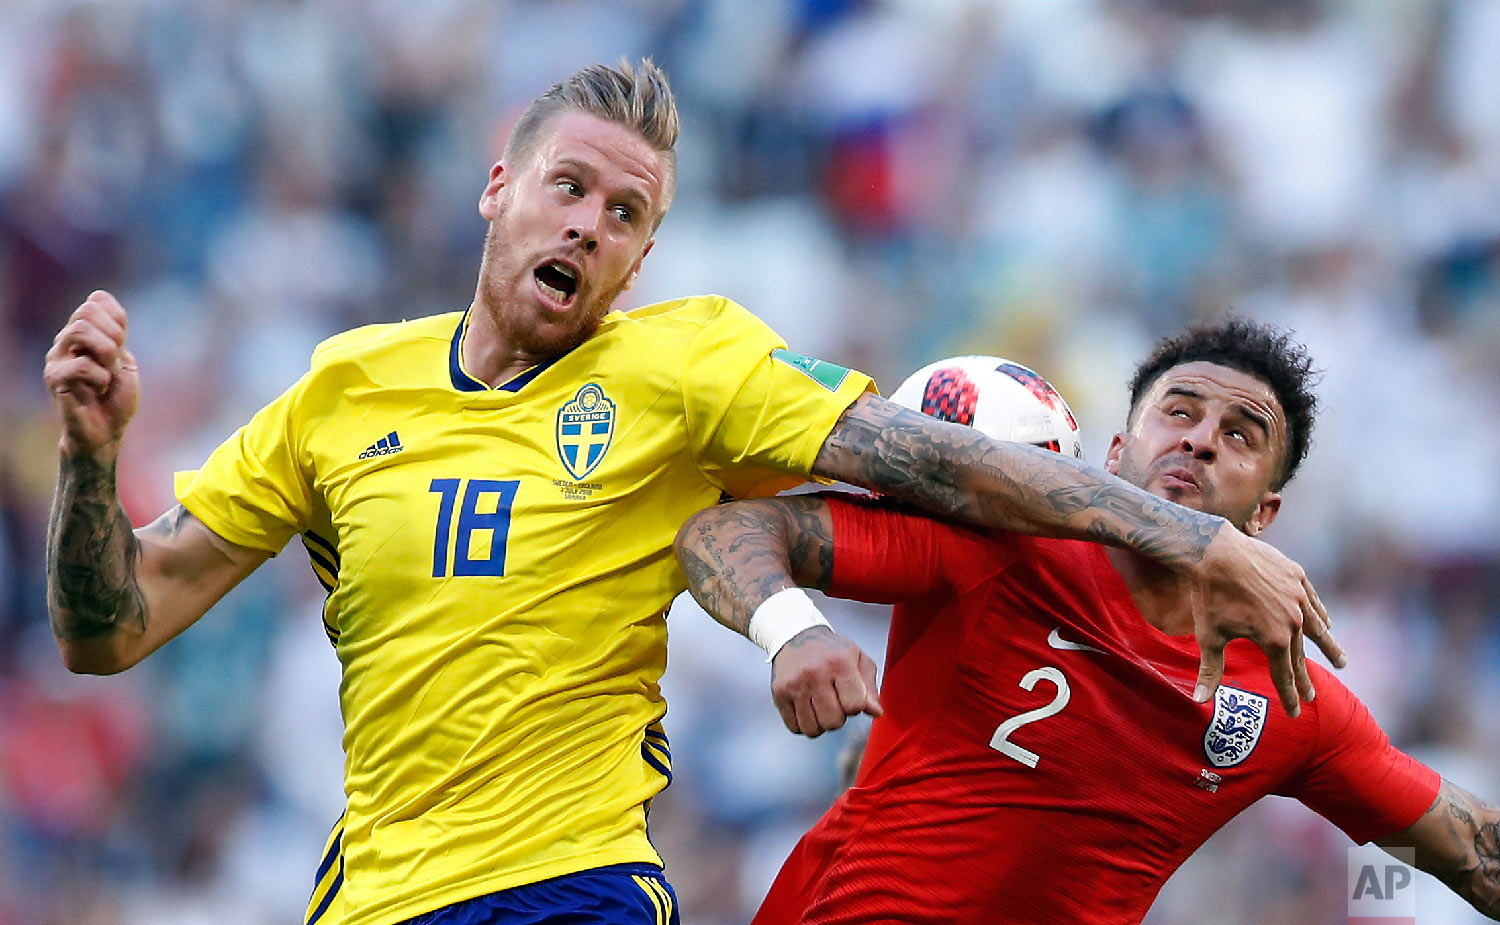 Sweden's Pontus Jansson, left, challenges for the ball with England's Kyle Walker during the quarterfinal match between Sweden and England at the 2018 soccer World Cup in the Samara Arena, in Samara, Russia, Saturday, July 7, 2018. (AP Photo/Alastair Grant)